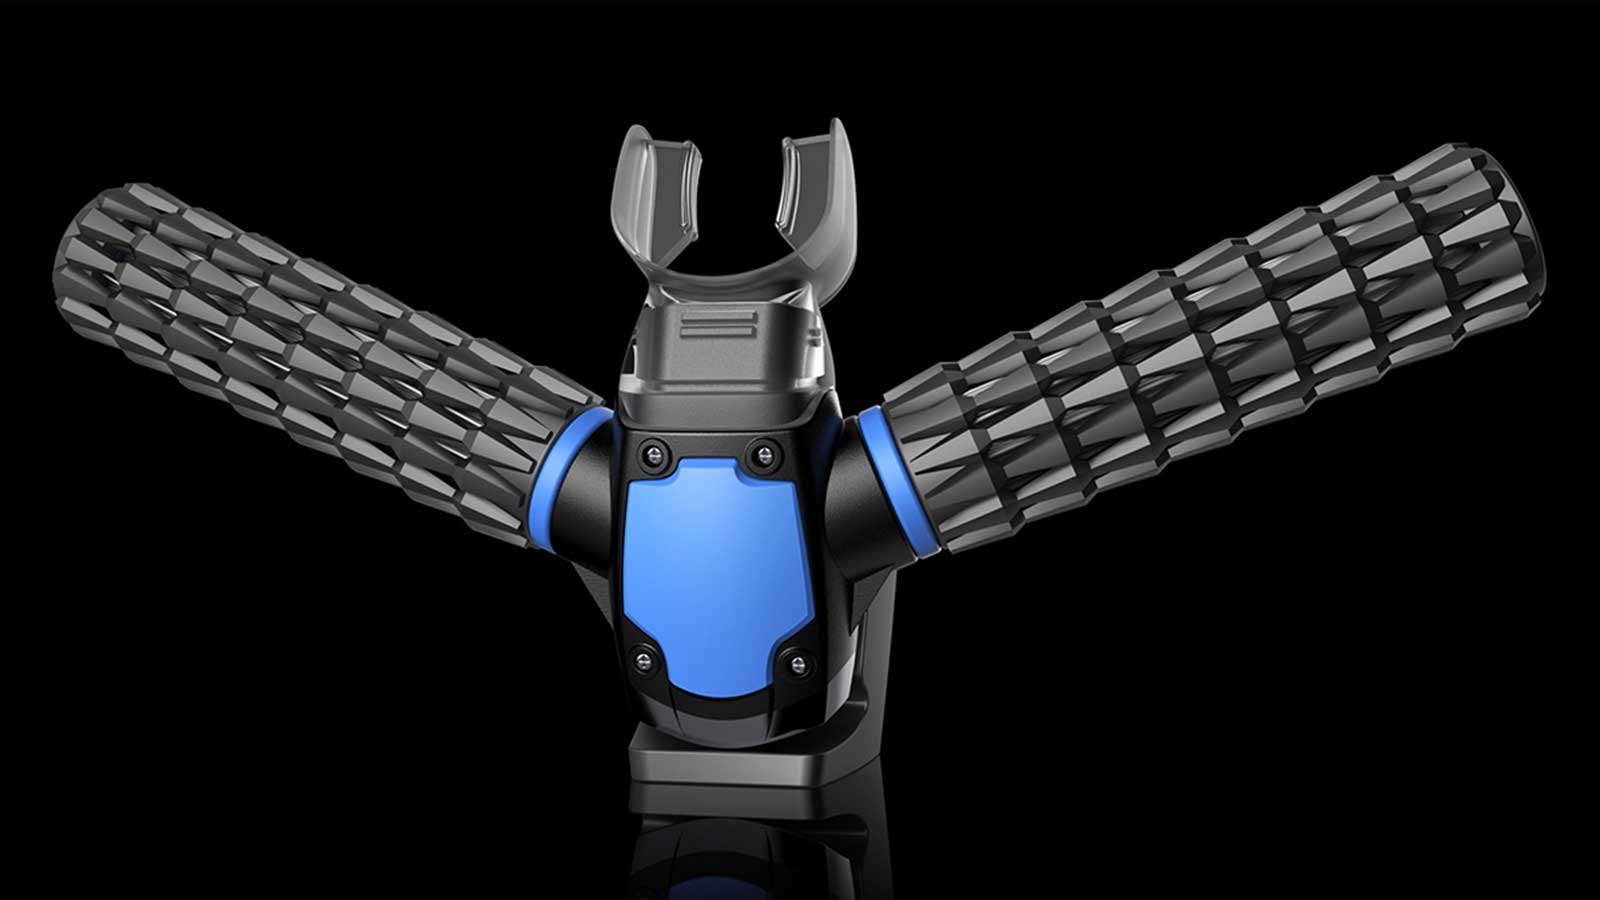 TRITON GILLS THE WORLD'S FIRST ARTIFICIAL GILLS